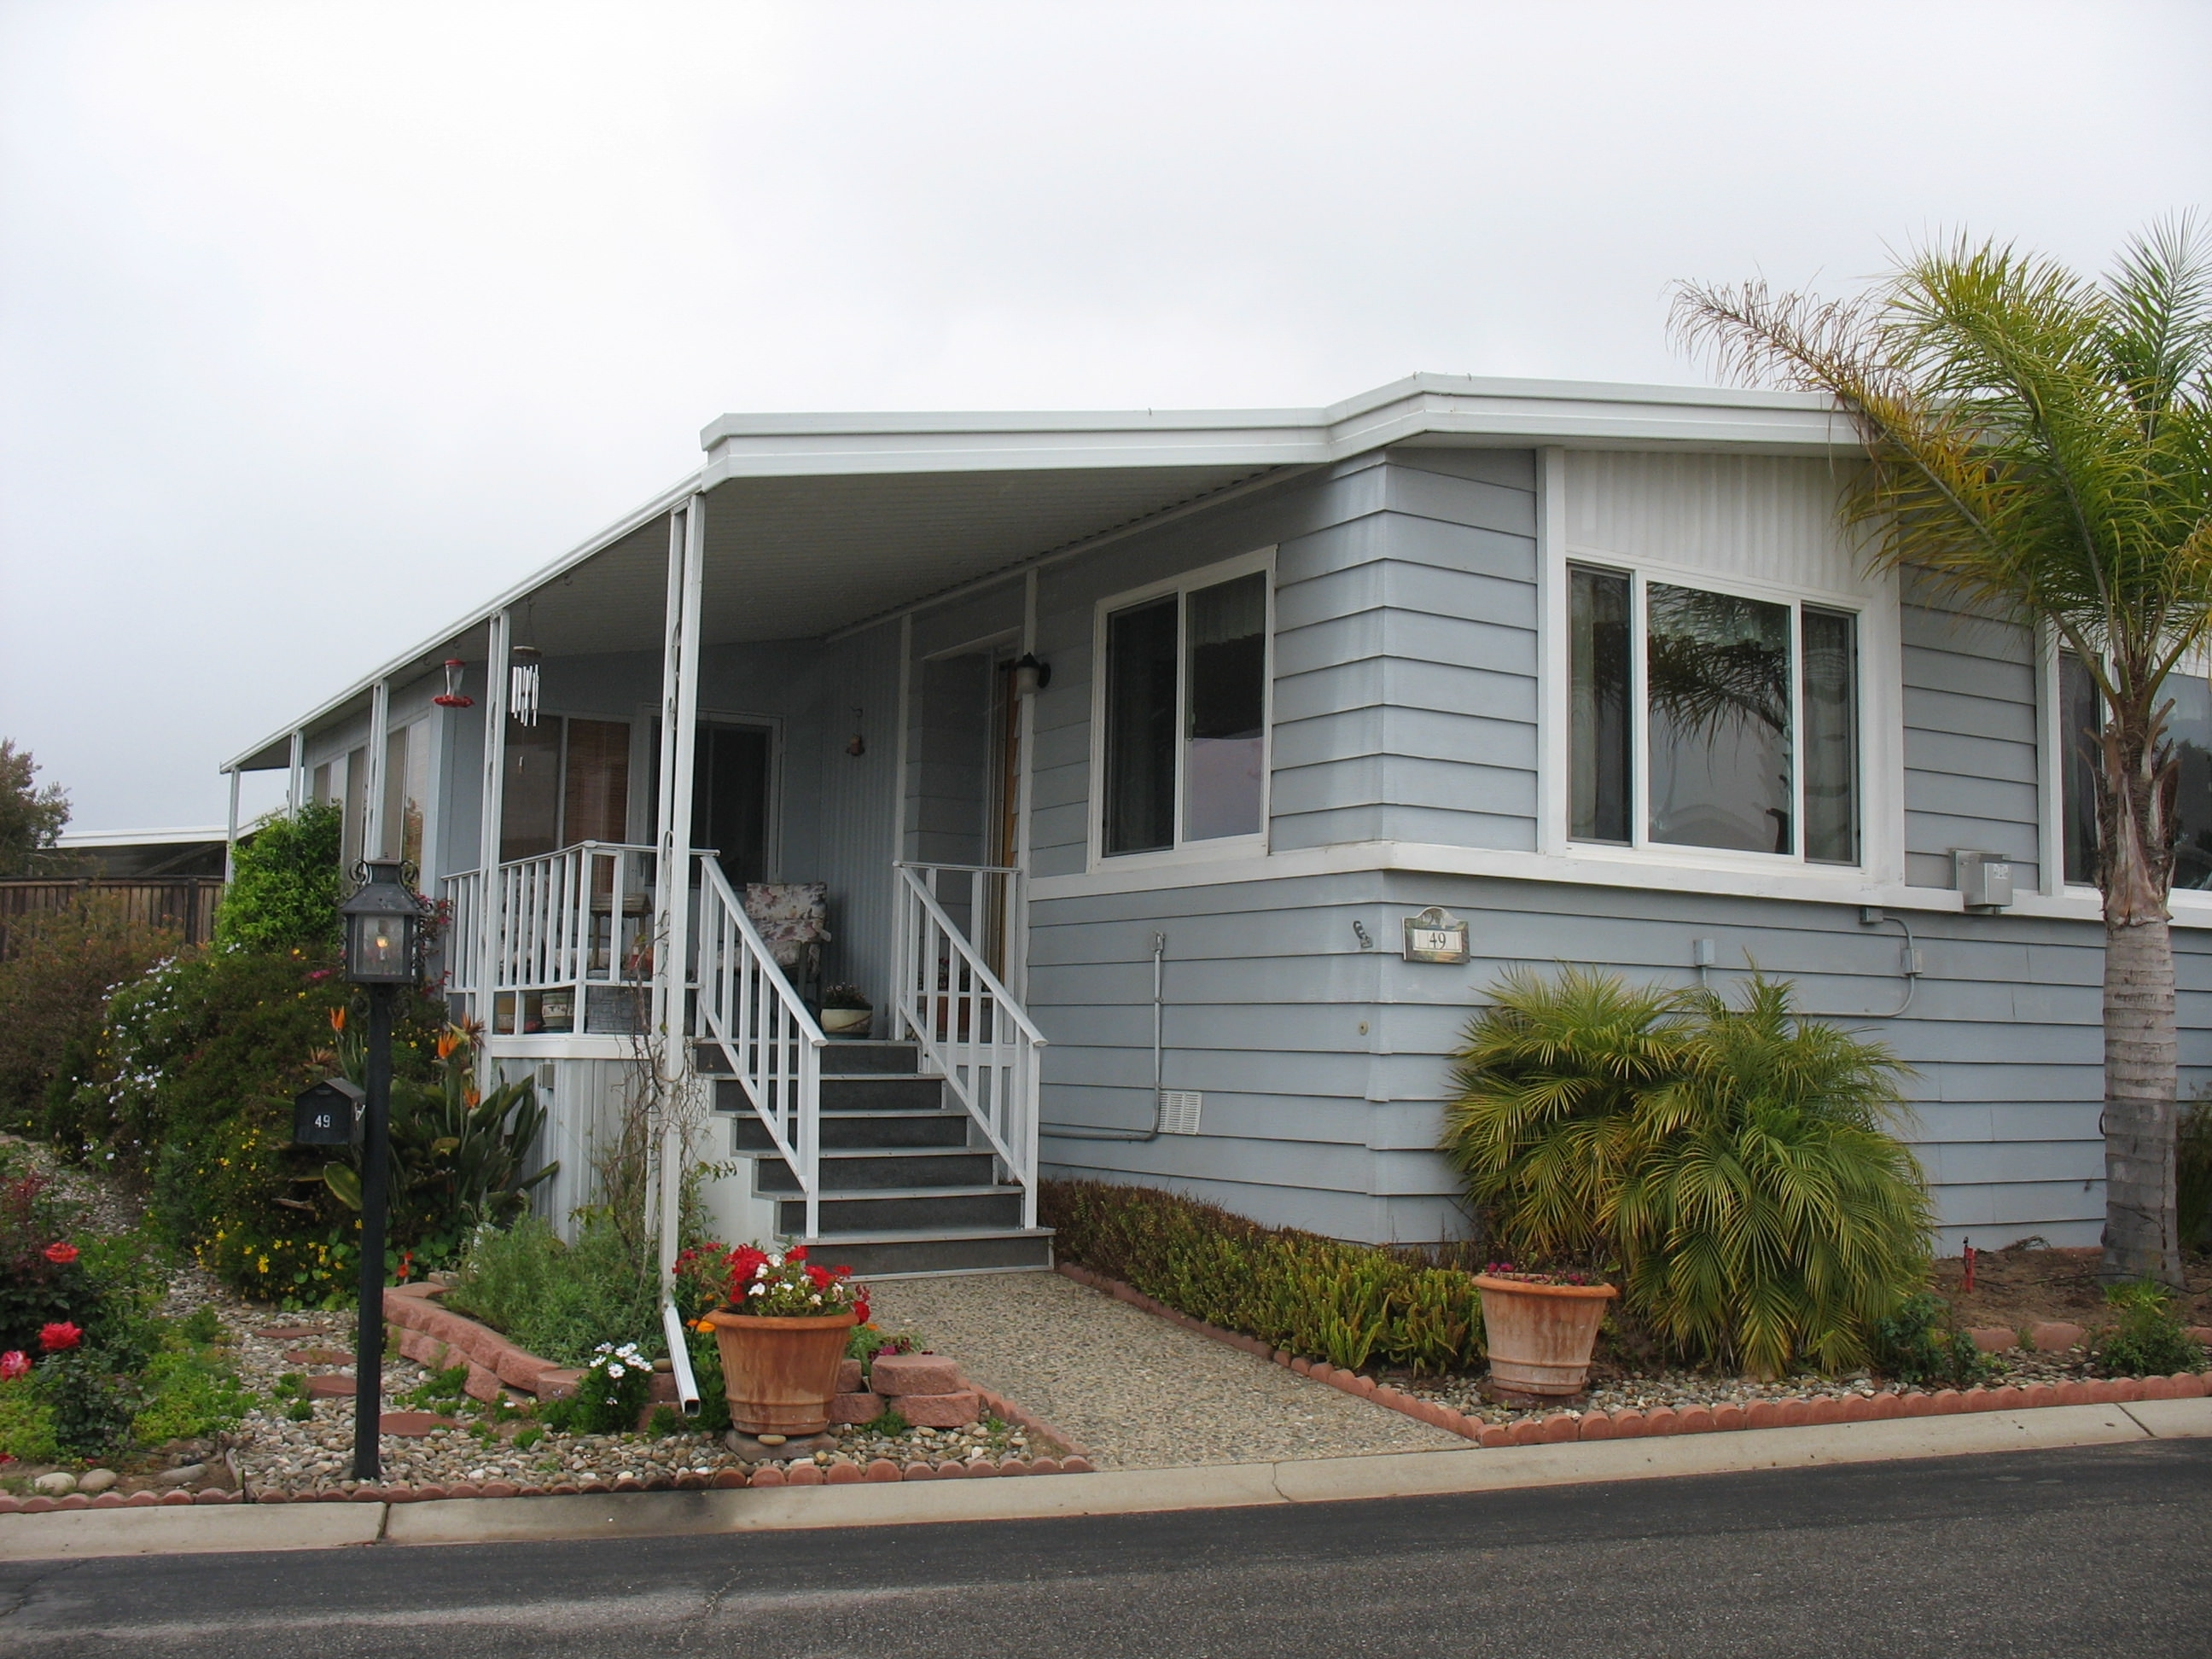 Property photo for 6180 Via Real #49 Carpinteria, California 93013 - 13-1393